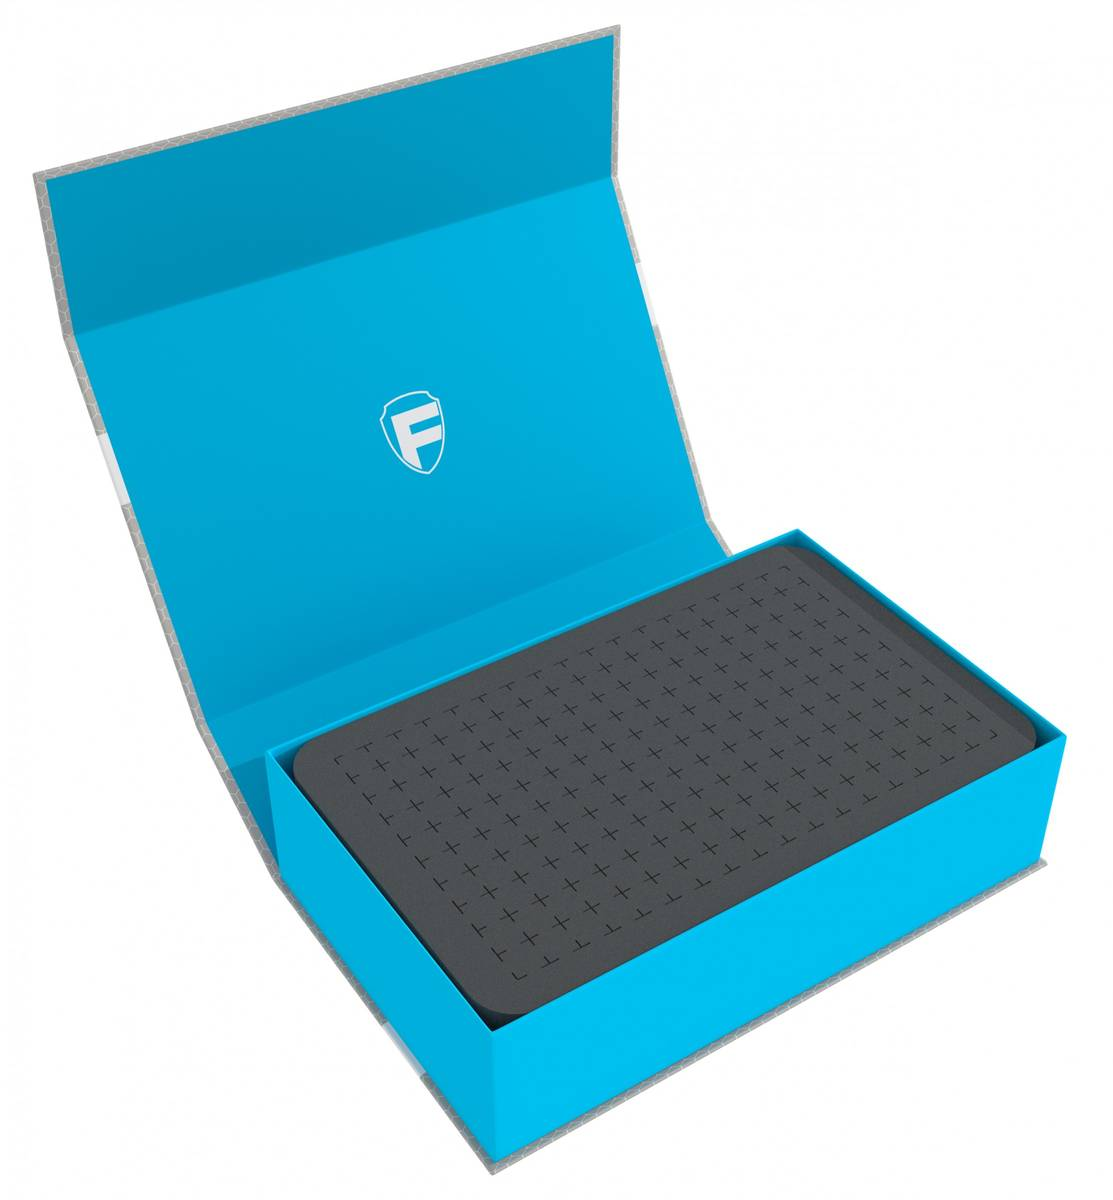 Feldherr Magnetic Box blue with 60 mm pick and pluck foam for custom projects